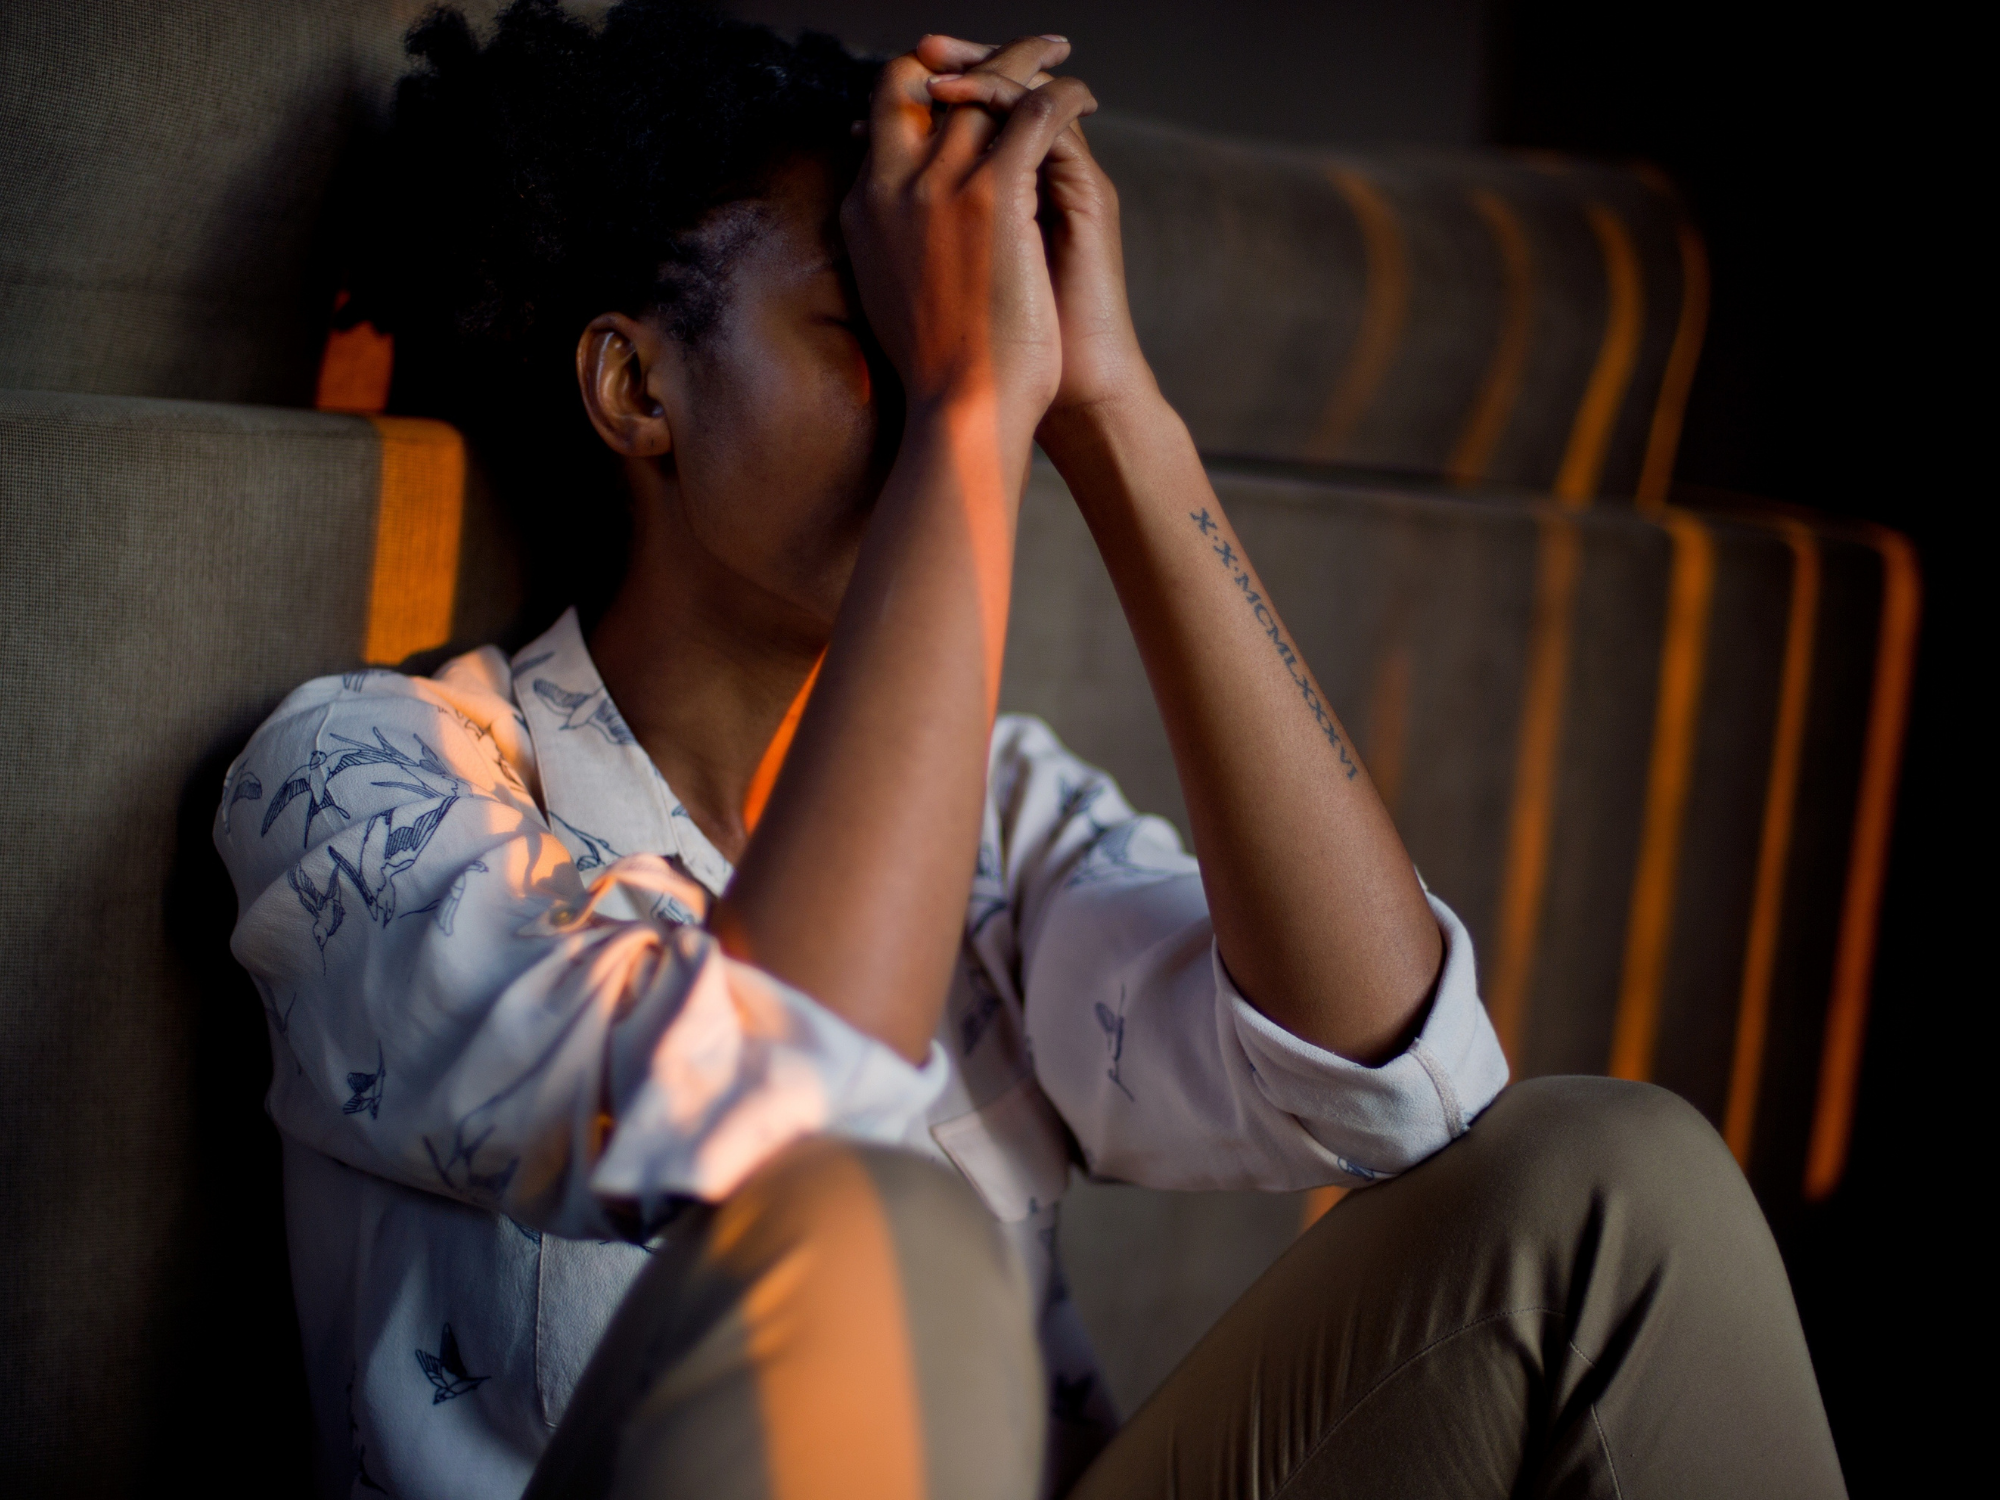 woman dealing with difficult time